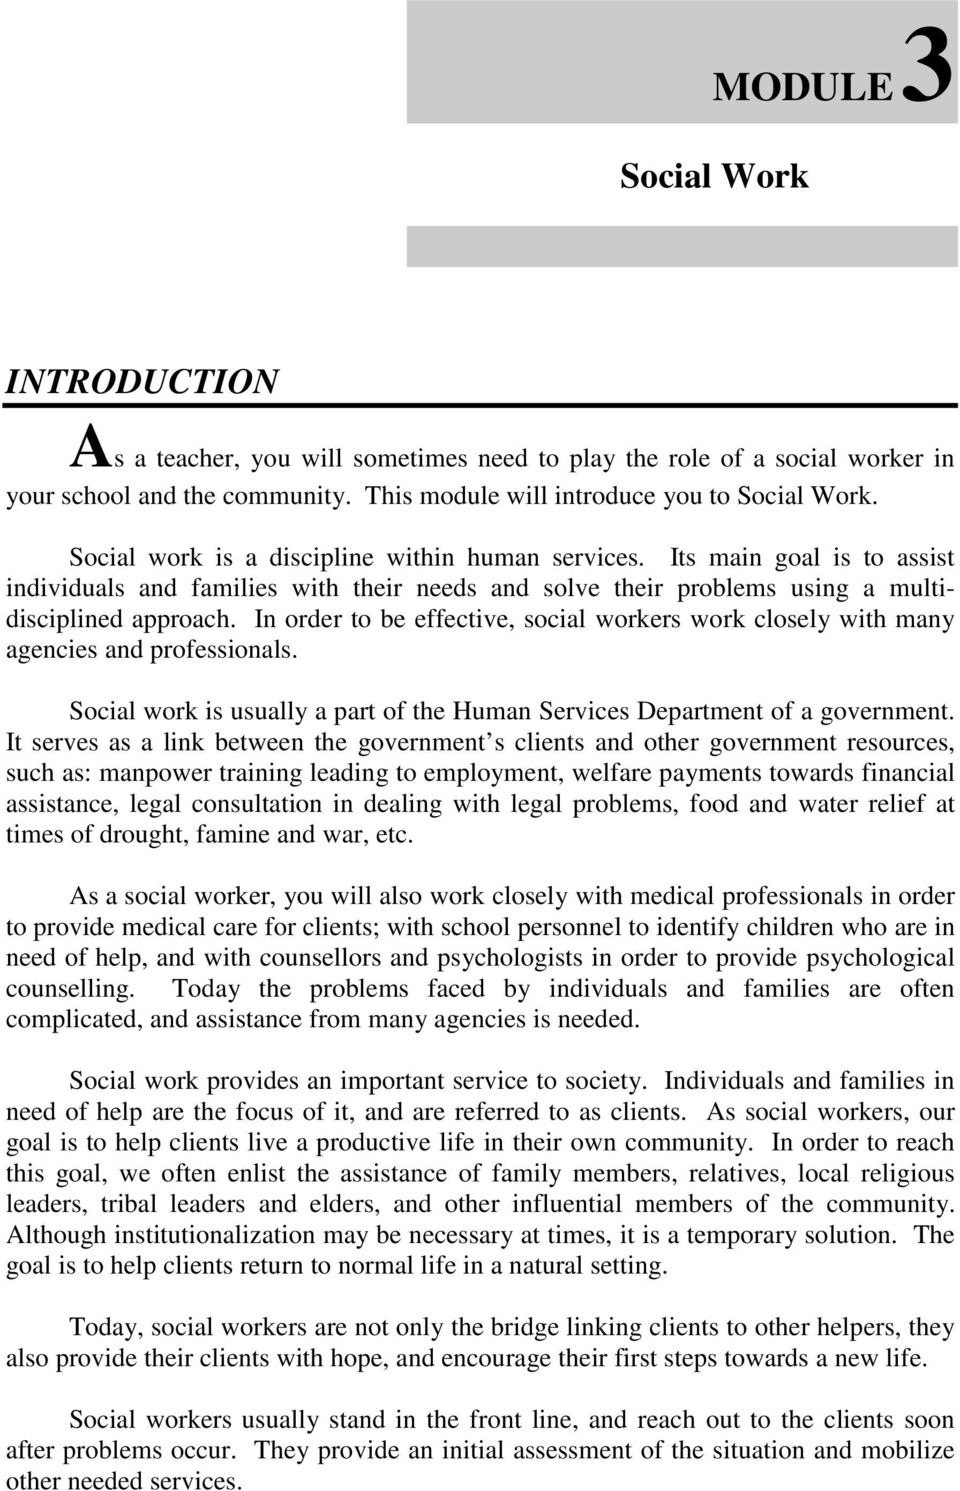 In order to be effective, social workers work closely with many agencies and professionals. Social work is usually a part of the Human Services Department of a government.